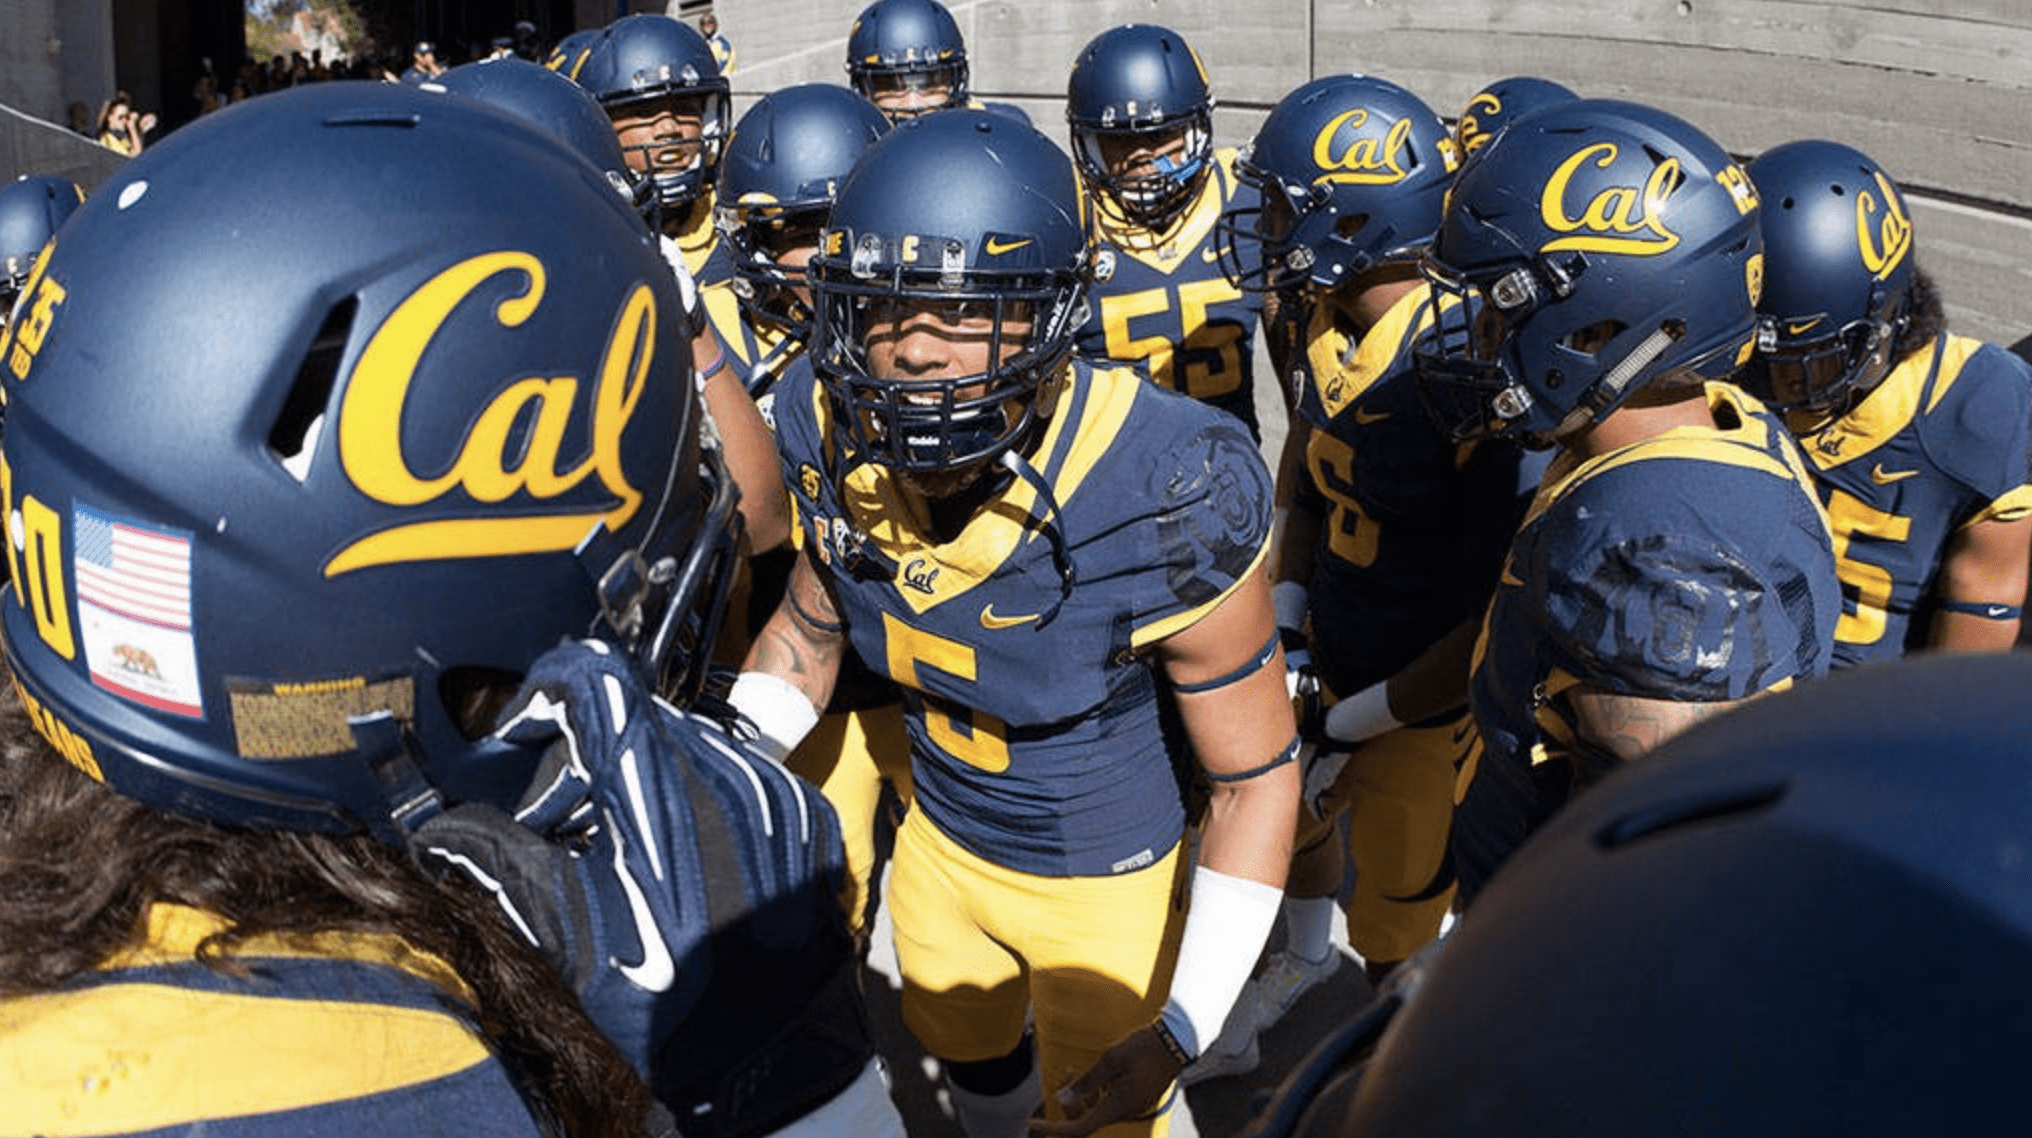 Editorial: college athletes should be paid